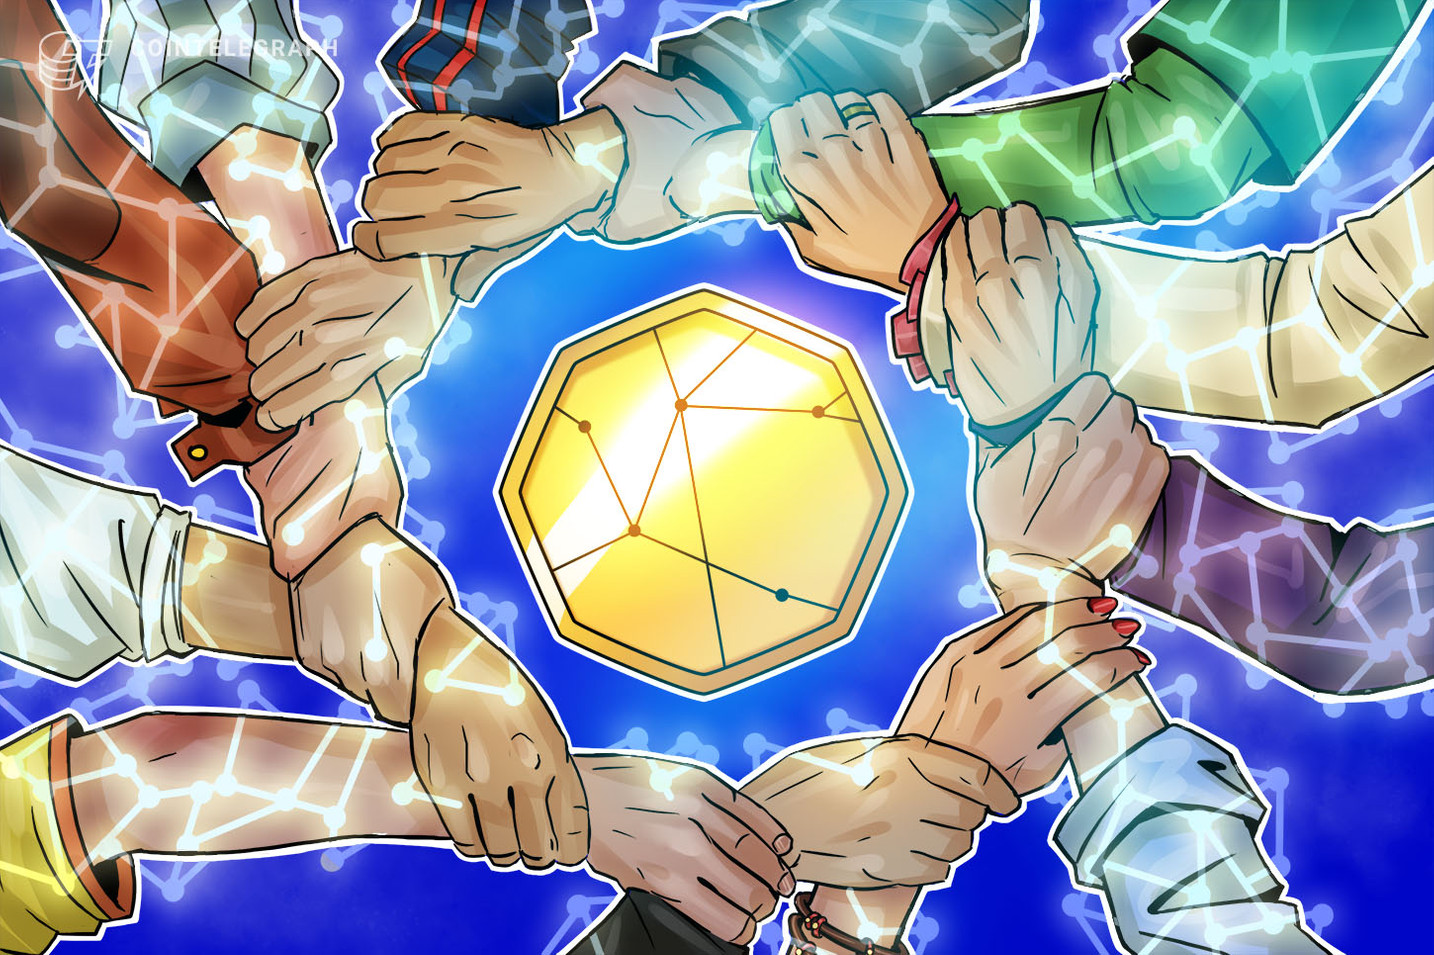 IDG-Backed Crypto Exchange KuCoin Establishes KuGroup to Expand Services